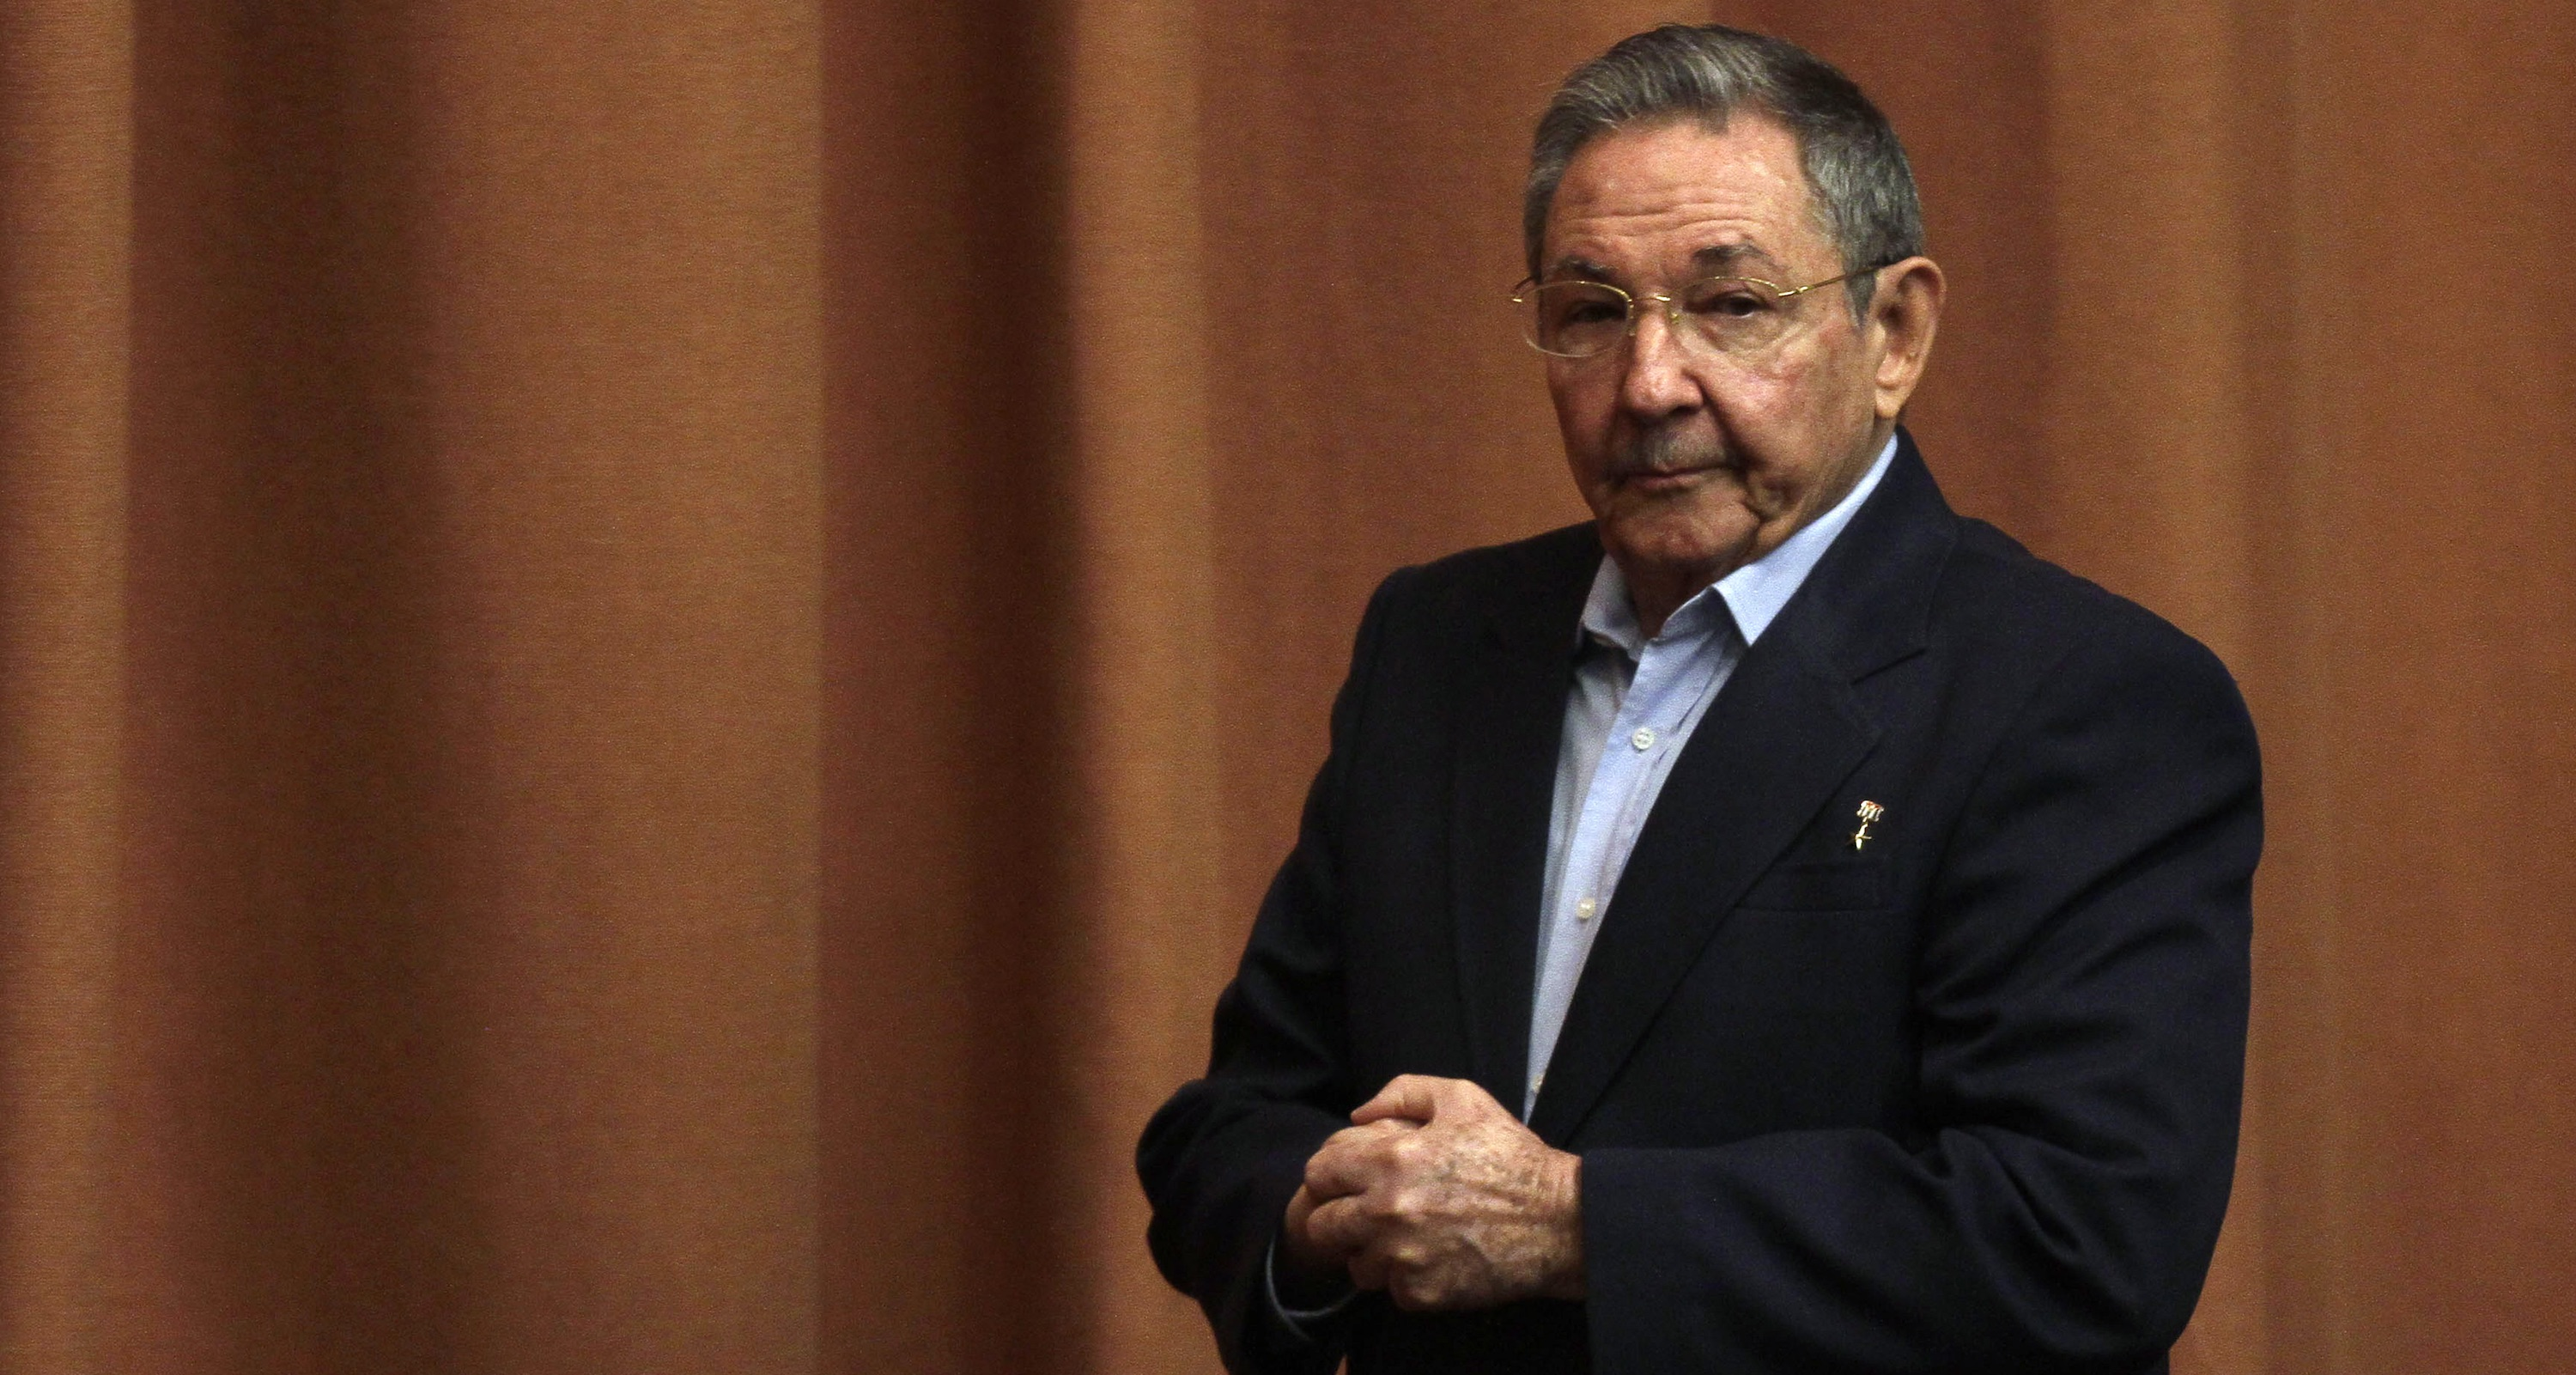 Thawing of US-Cuba relations truly began in 2008, when Raul Castro took the reigns from older brother Fidel.